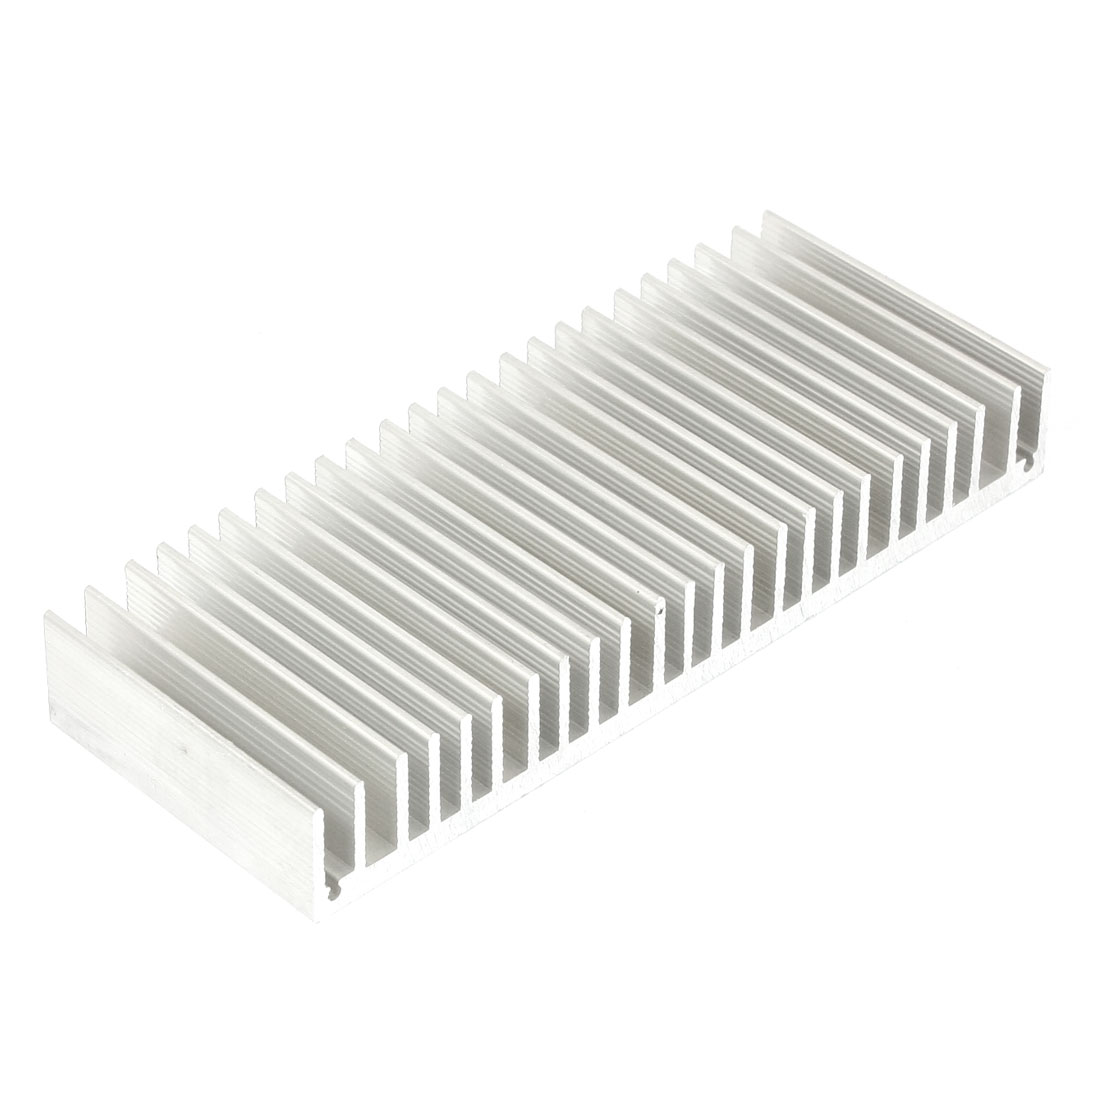 Silver White 150mmx60mmx20mm LED Heat Sink Aluminum Cooling Fin